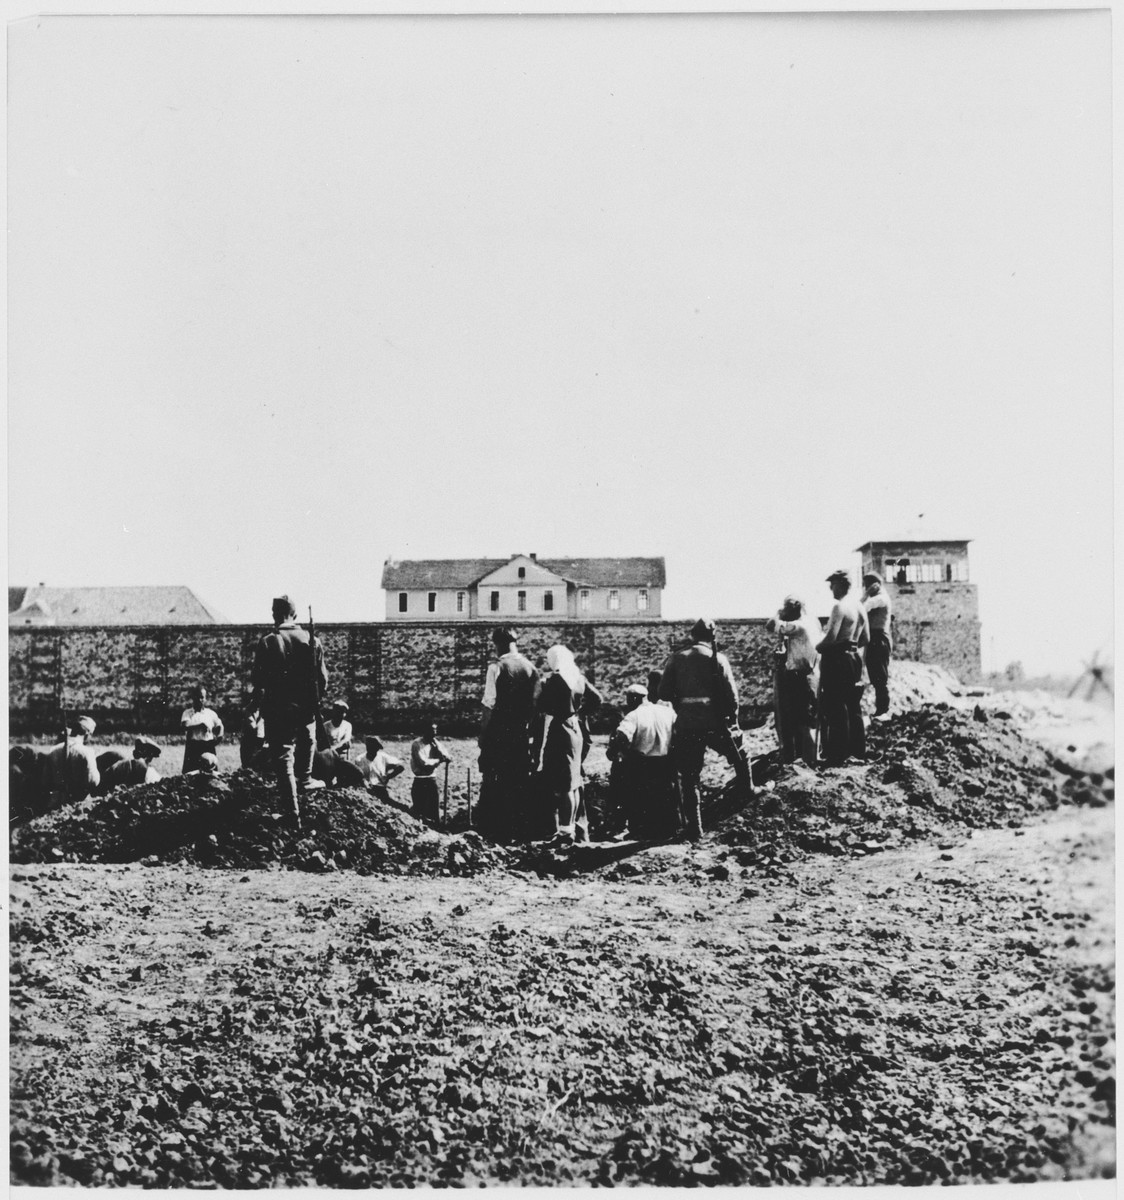 Workers exhume the bodies of former prisoners from a mass grave at the Stara Gradiska concentration camp.